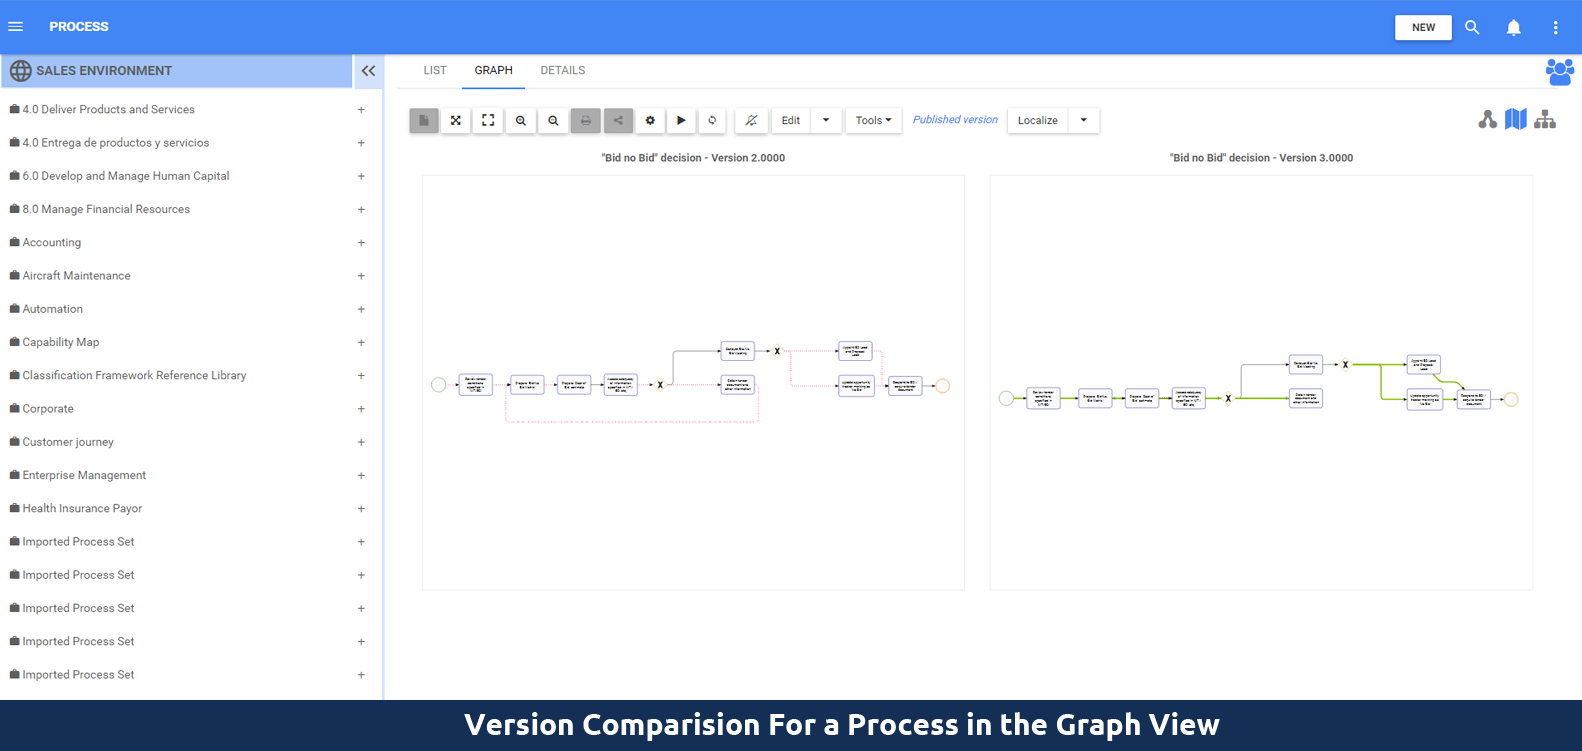 Version comparison for a process in the graph view